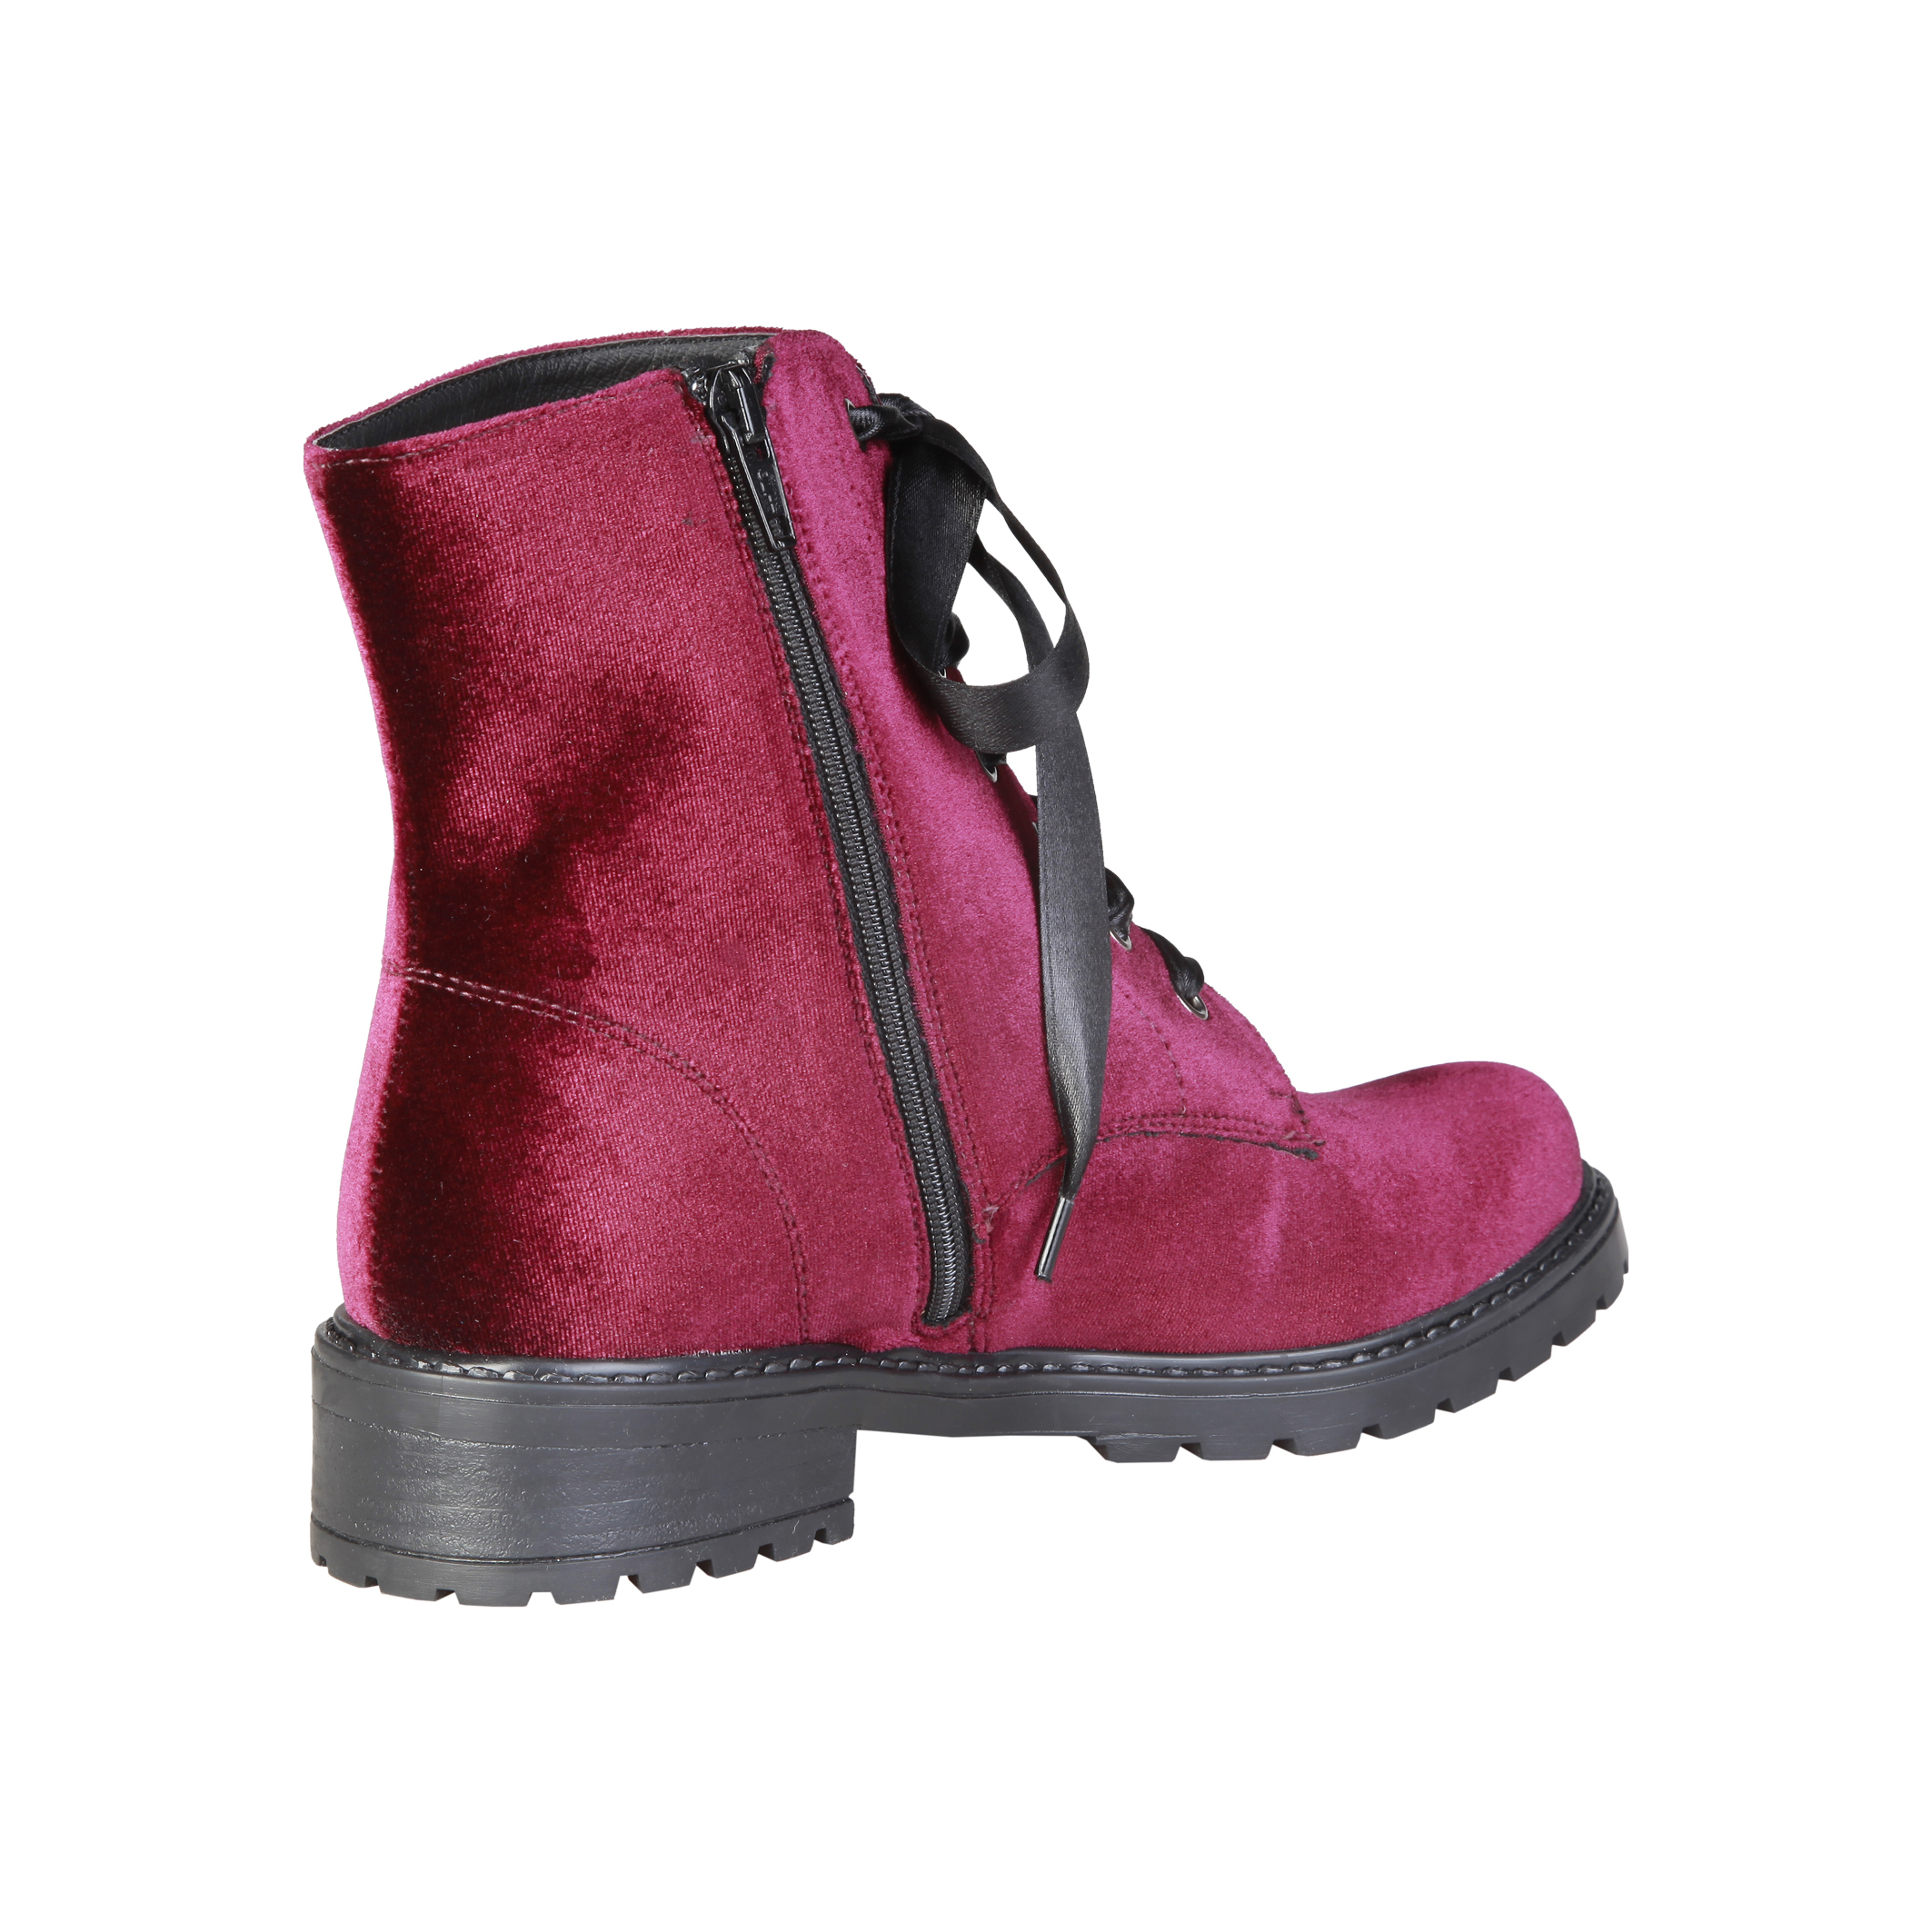 Chaussures  Ana Lublin ALICIA violet